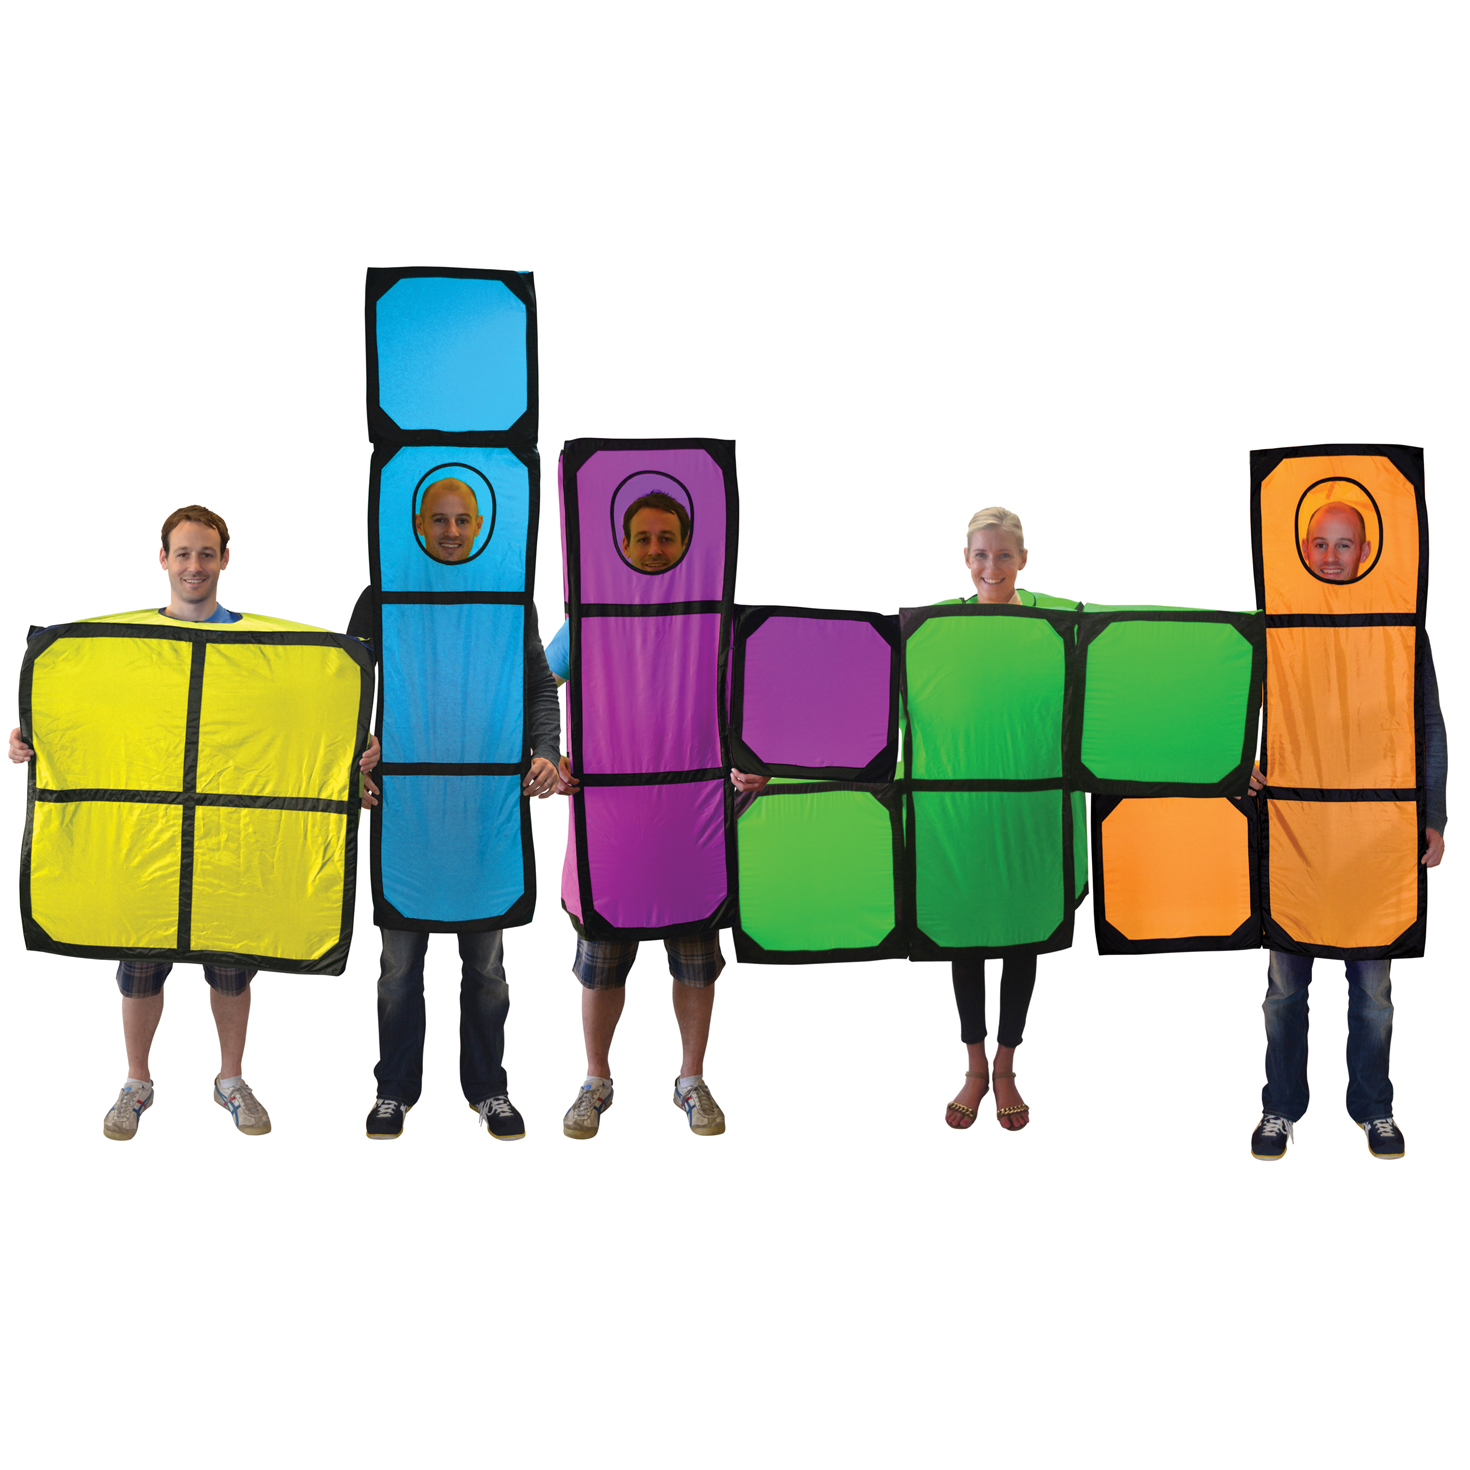 Morph Costume Co. launches official Tetris™ costumes for the UK